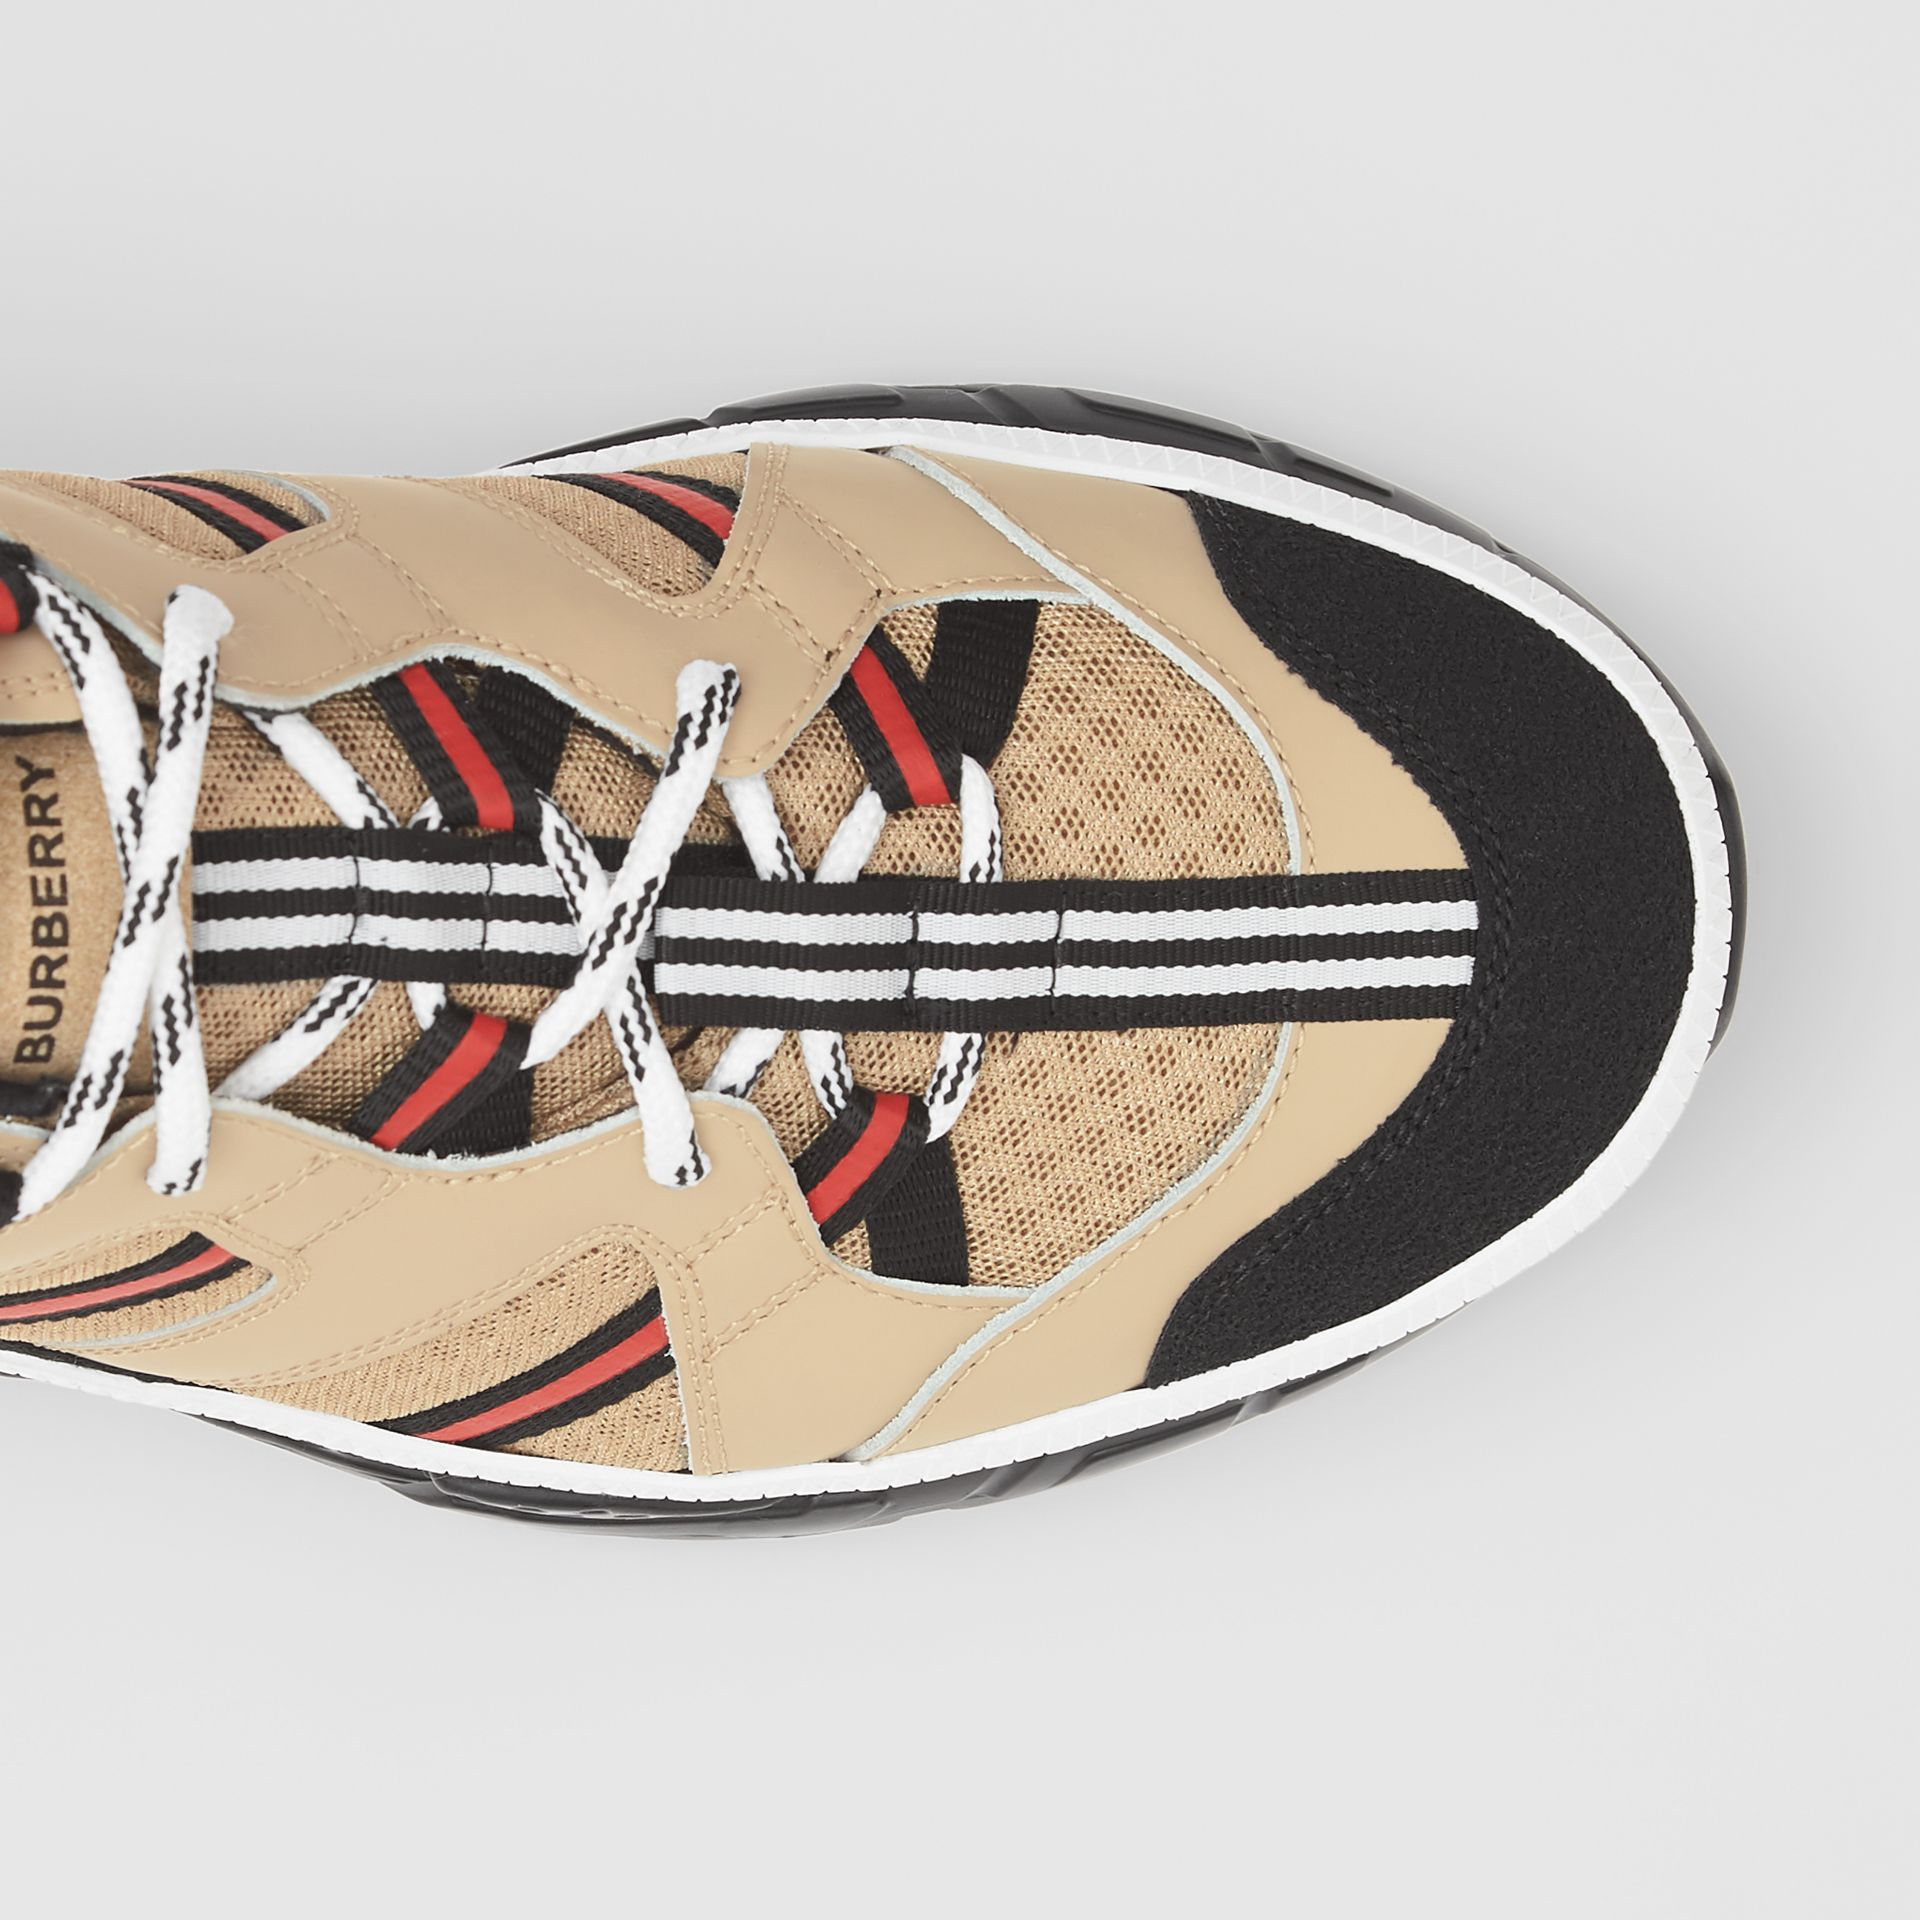 Mesh and Leather Union Sneakers in Beige - Men | Burberry Canada - gallery image 1